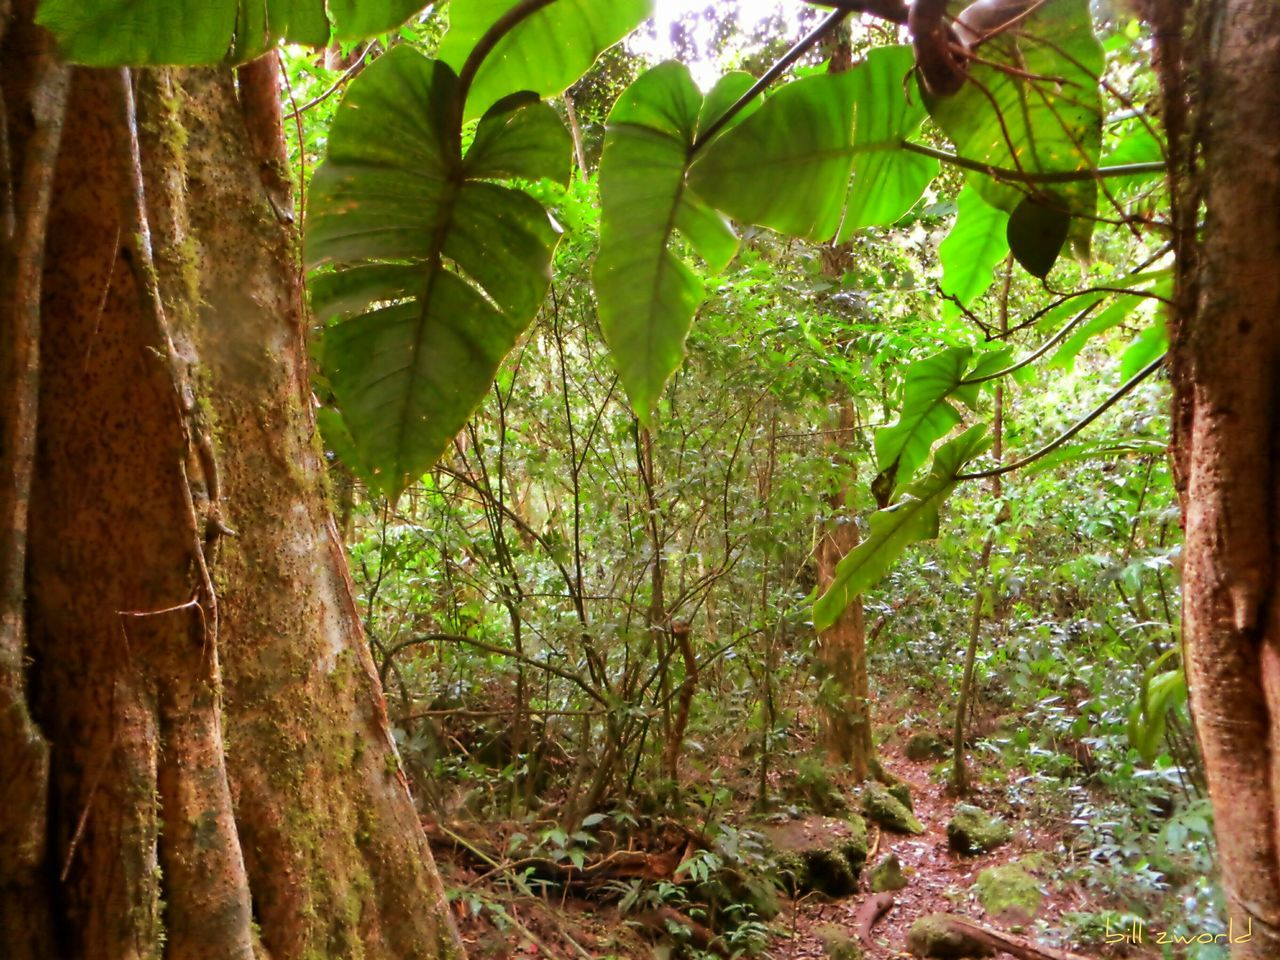 jungle window Traveling Natural Beauty Panamá Jungle Tropical Rainforest Leaves And Vines Pathways Strangler Fig No People